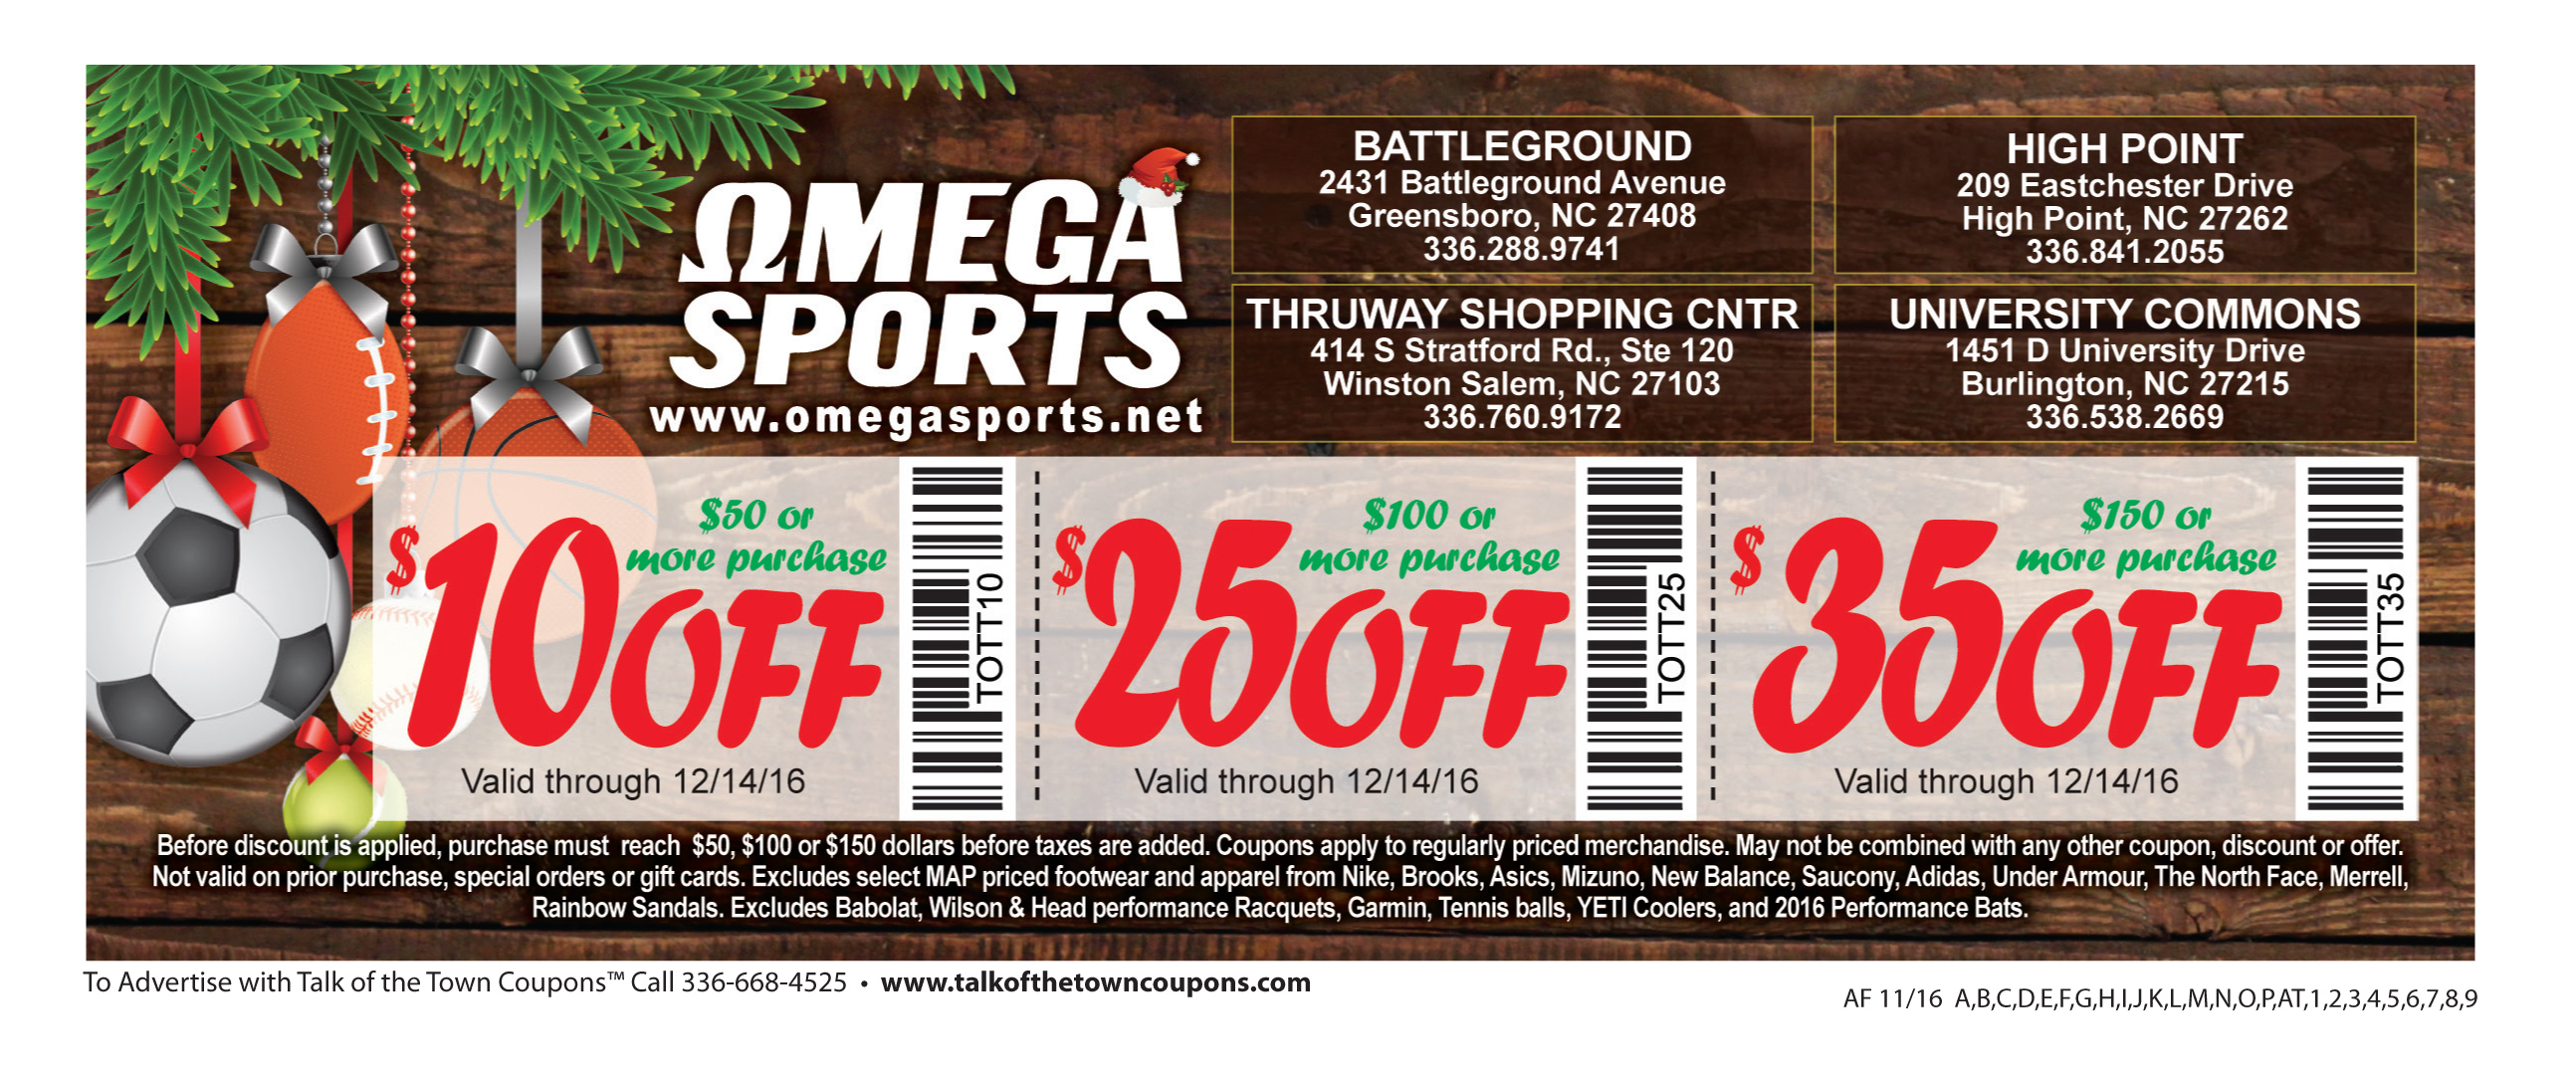 Omega Sports Booklet Offer Image